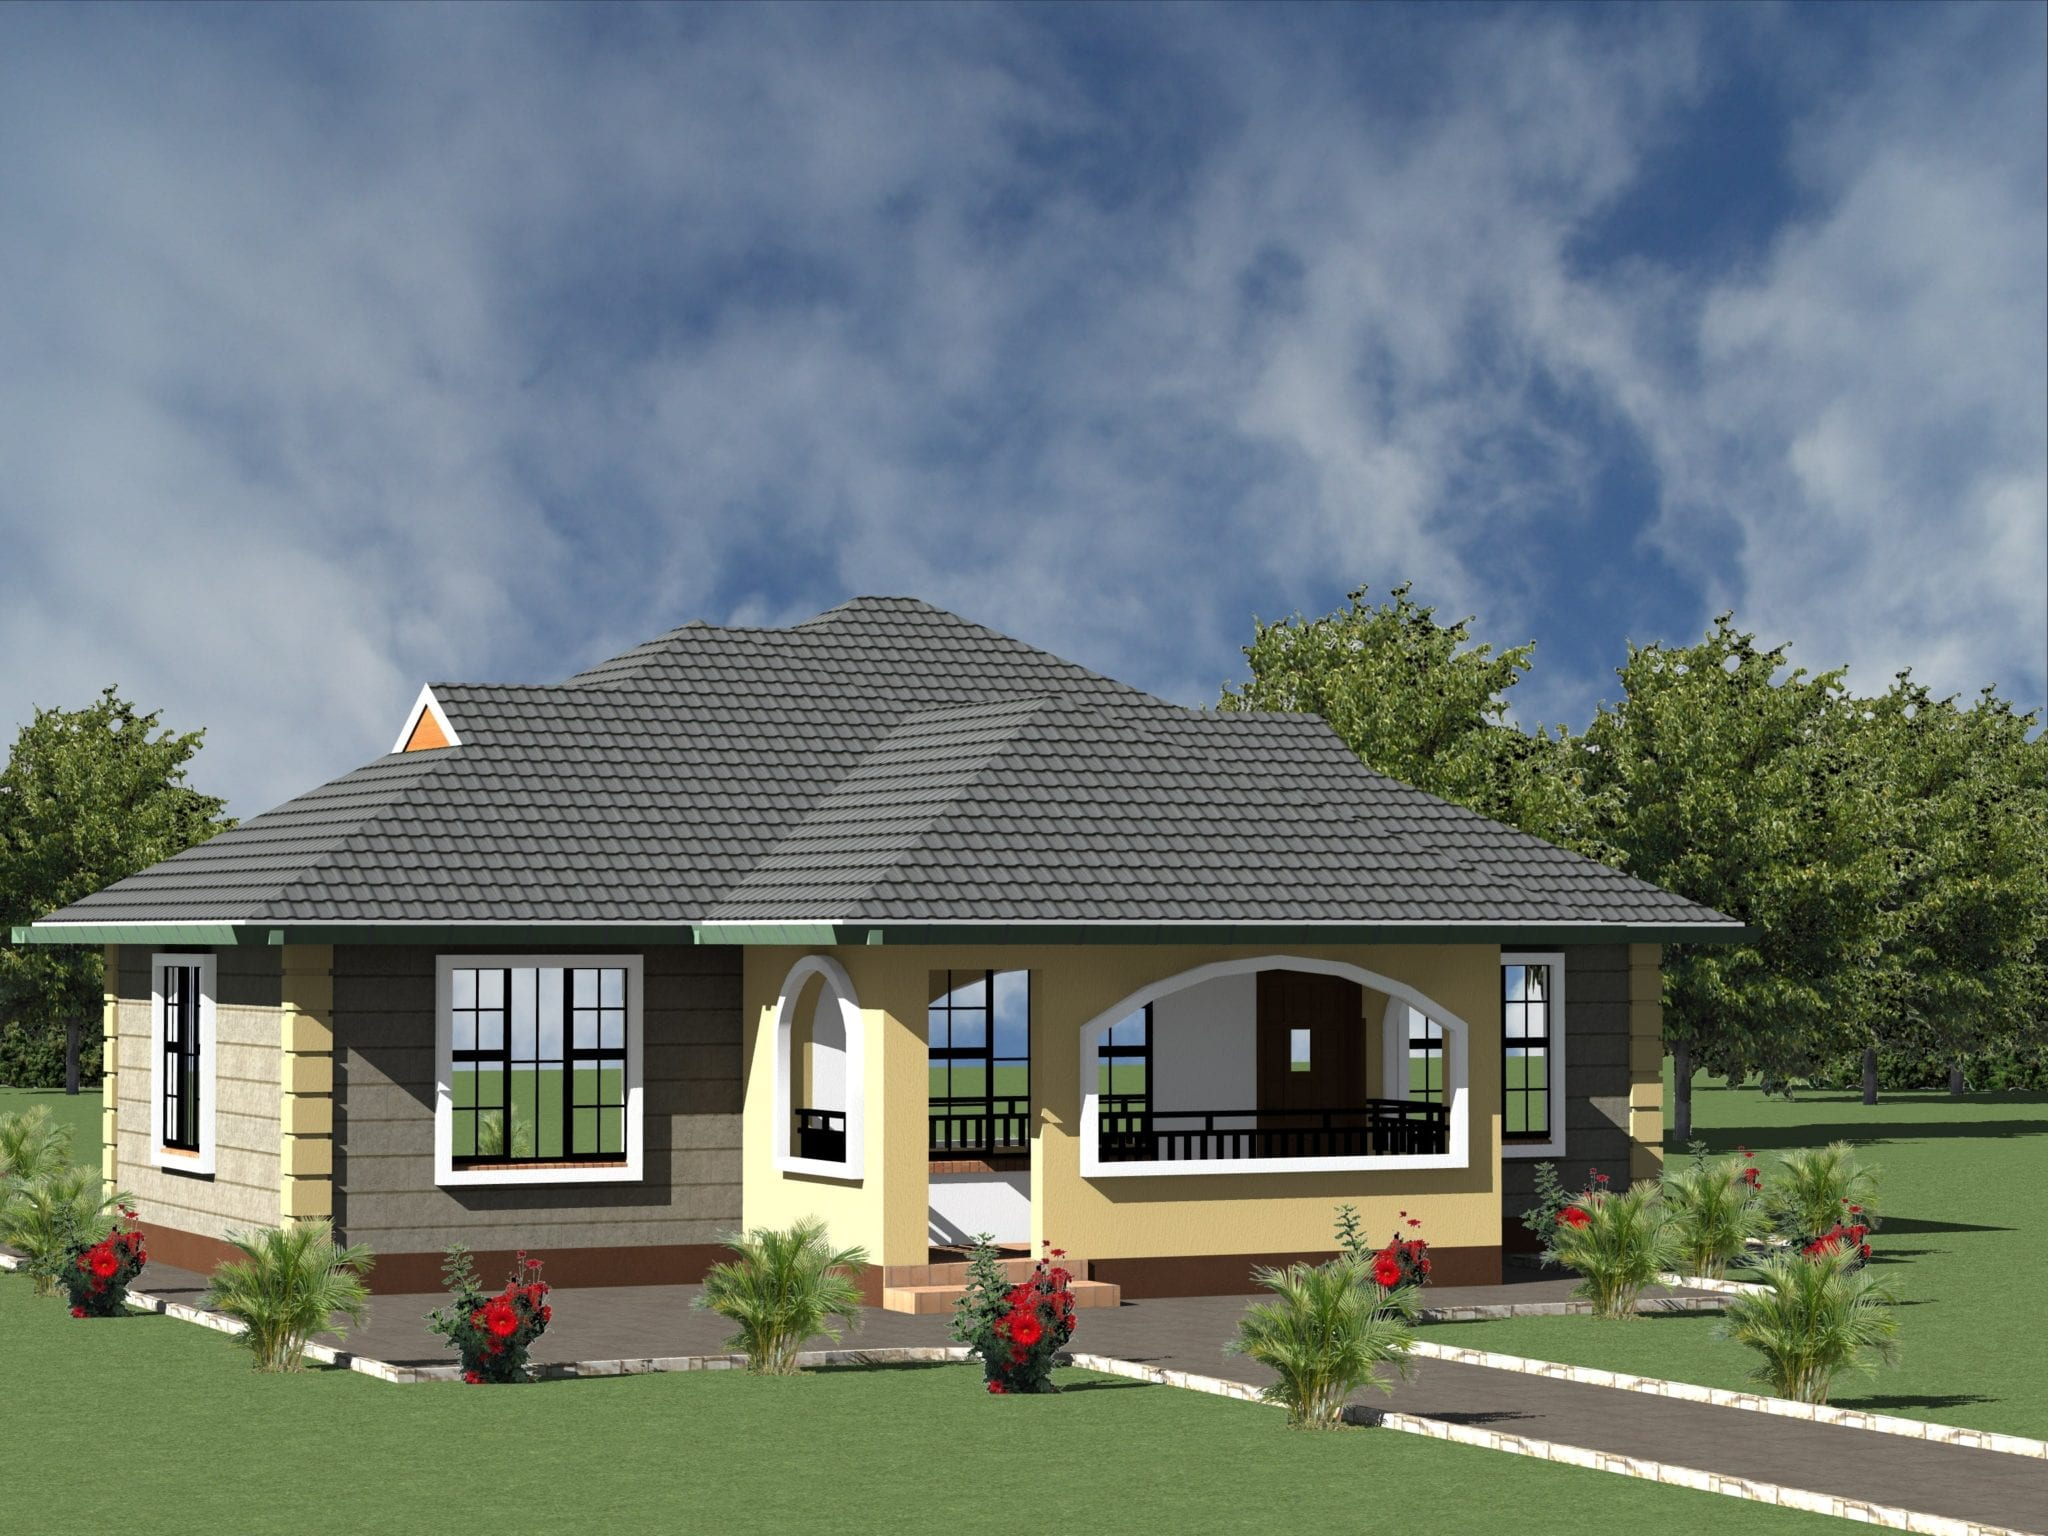 1249 B 49 RENDER 06 min min - 39+ Small 2 Bedroom House Plans And Designs In Kenya Background